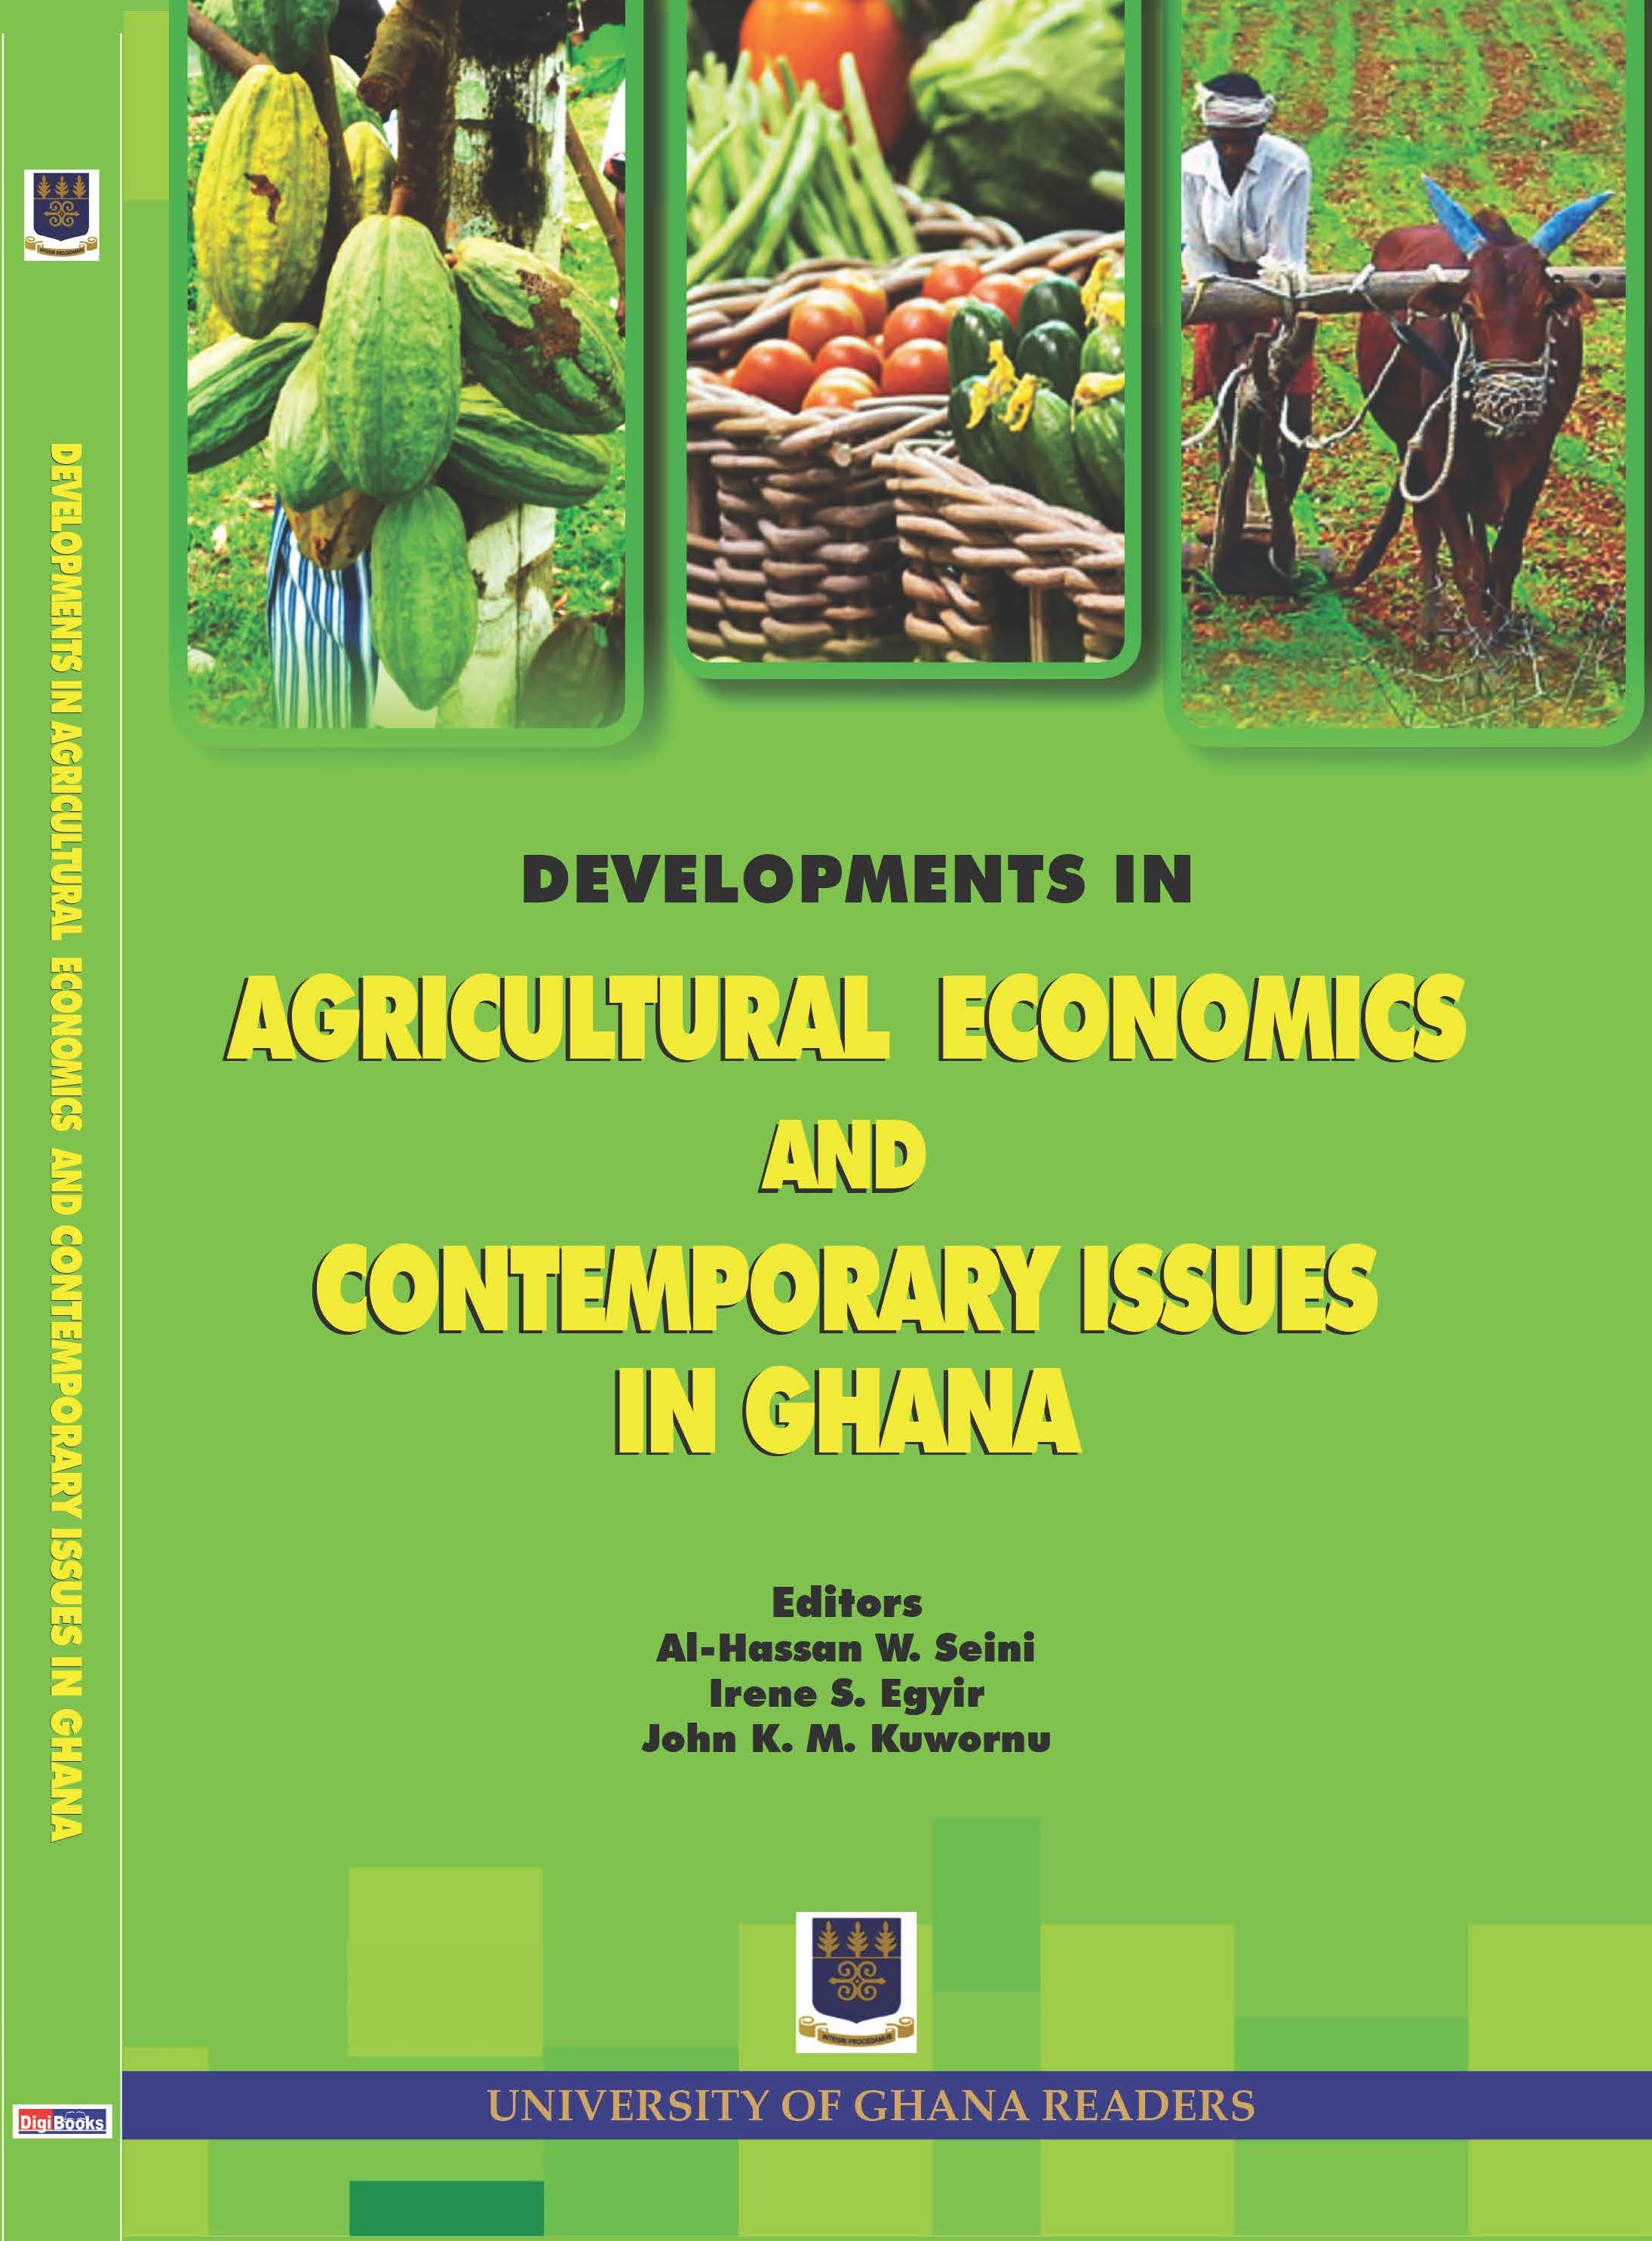 DEVELOPMENTS-IN-AGRICULTURAL-ECONOMICS-AND-CONTEMPORARY-ISSUES-IN-GHANA